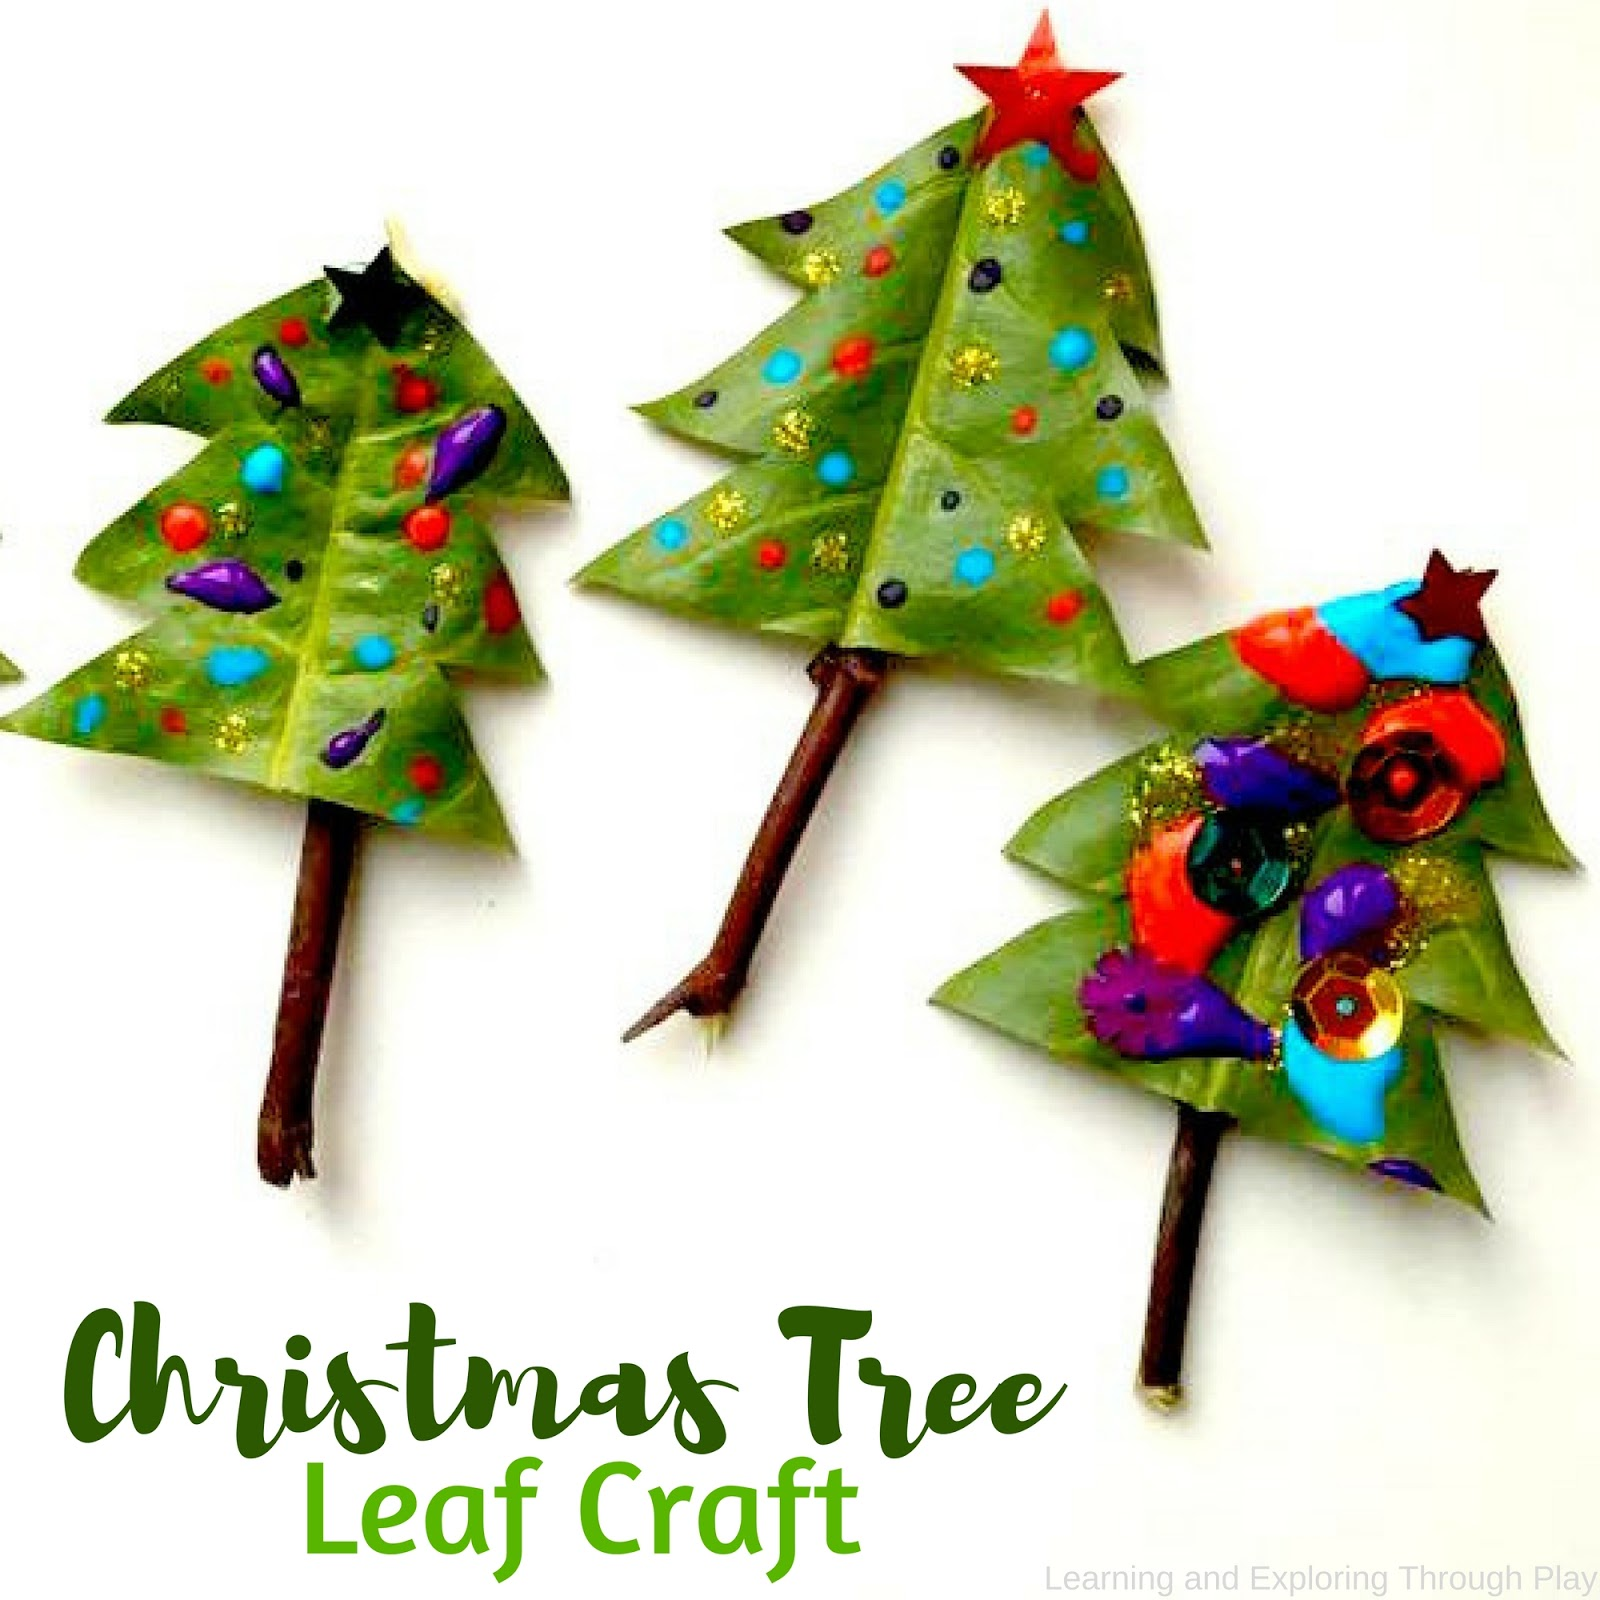 Learning and Exploring Through Play: Leaf Christmas Tree Craft